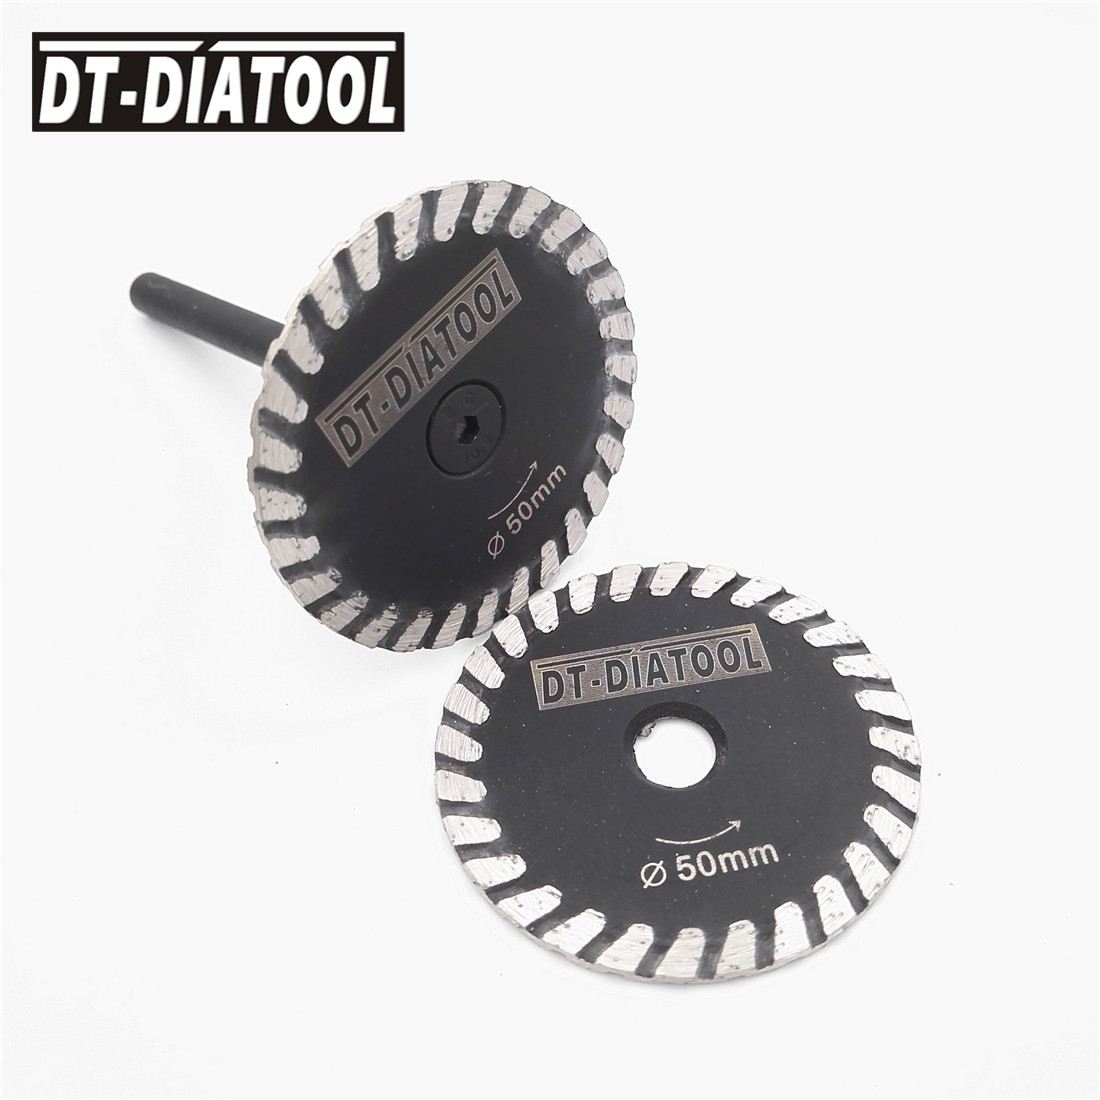 DT-DIATOOL 1pc Dia 30/40/50mm Mini Engraving Diamond Blade With Removable 6mm Shank & 1pc Mini Saw Blade Without Shank For Stone